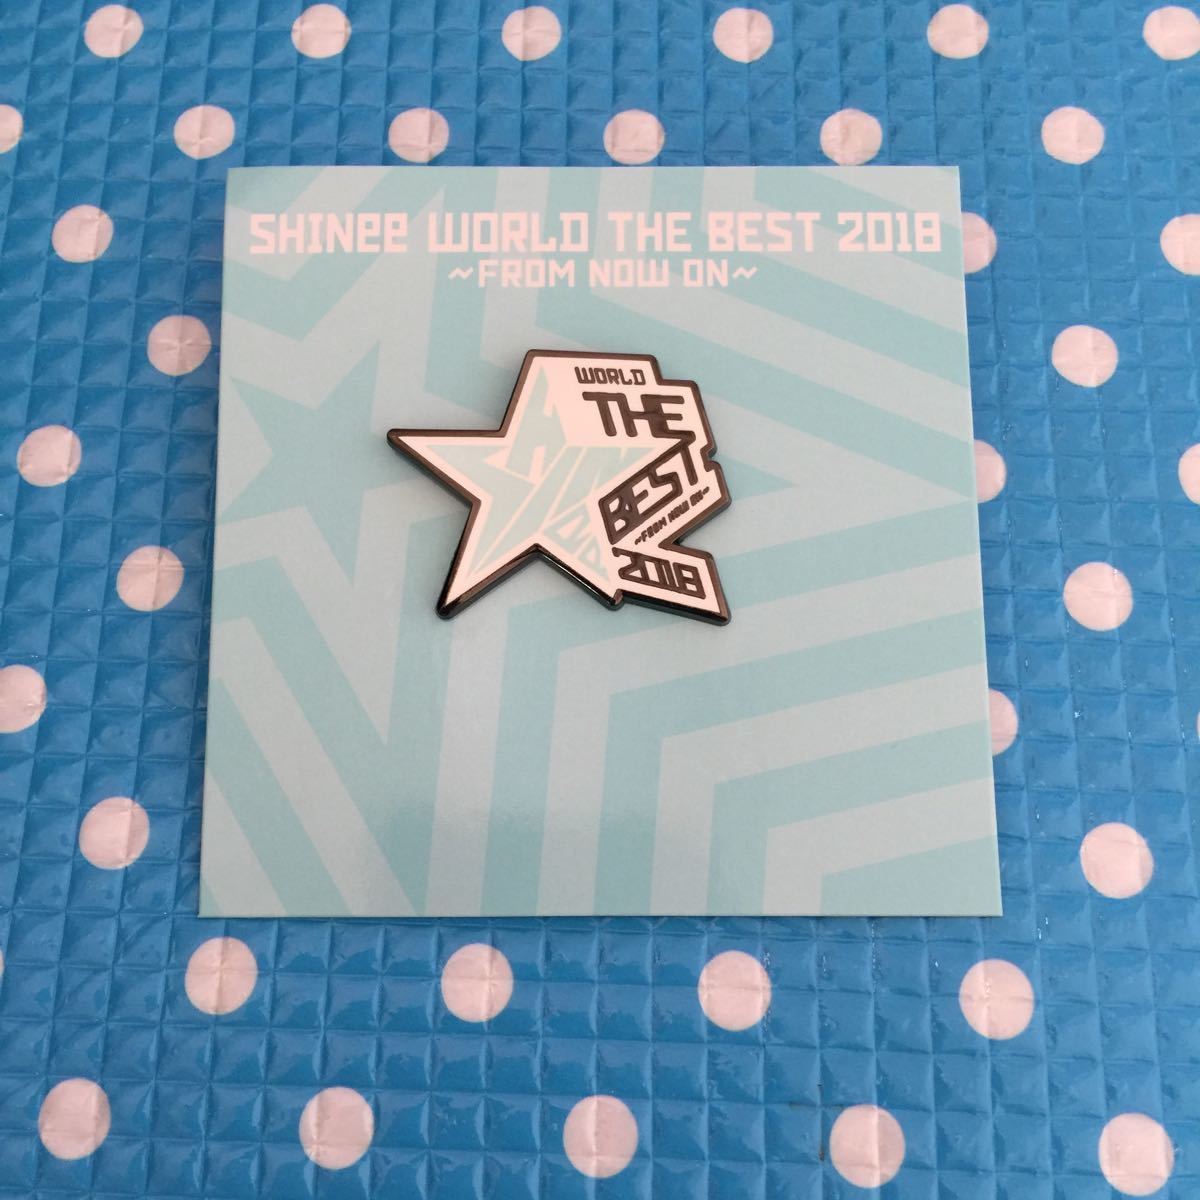 SHINee WORLD THE BEST 2018 FROM NOW ON 公式 グッズ★ランダムピンバッジ ピンバッジ ピンバッチ E★スター 星 ver._画像1